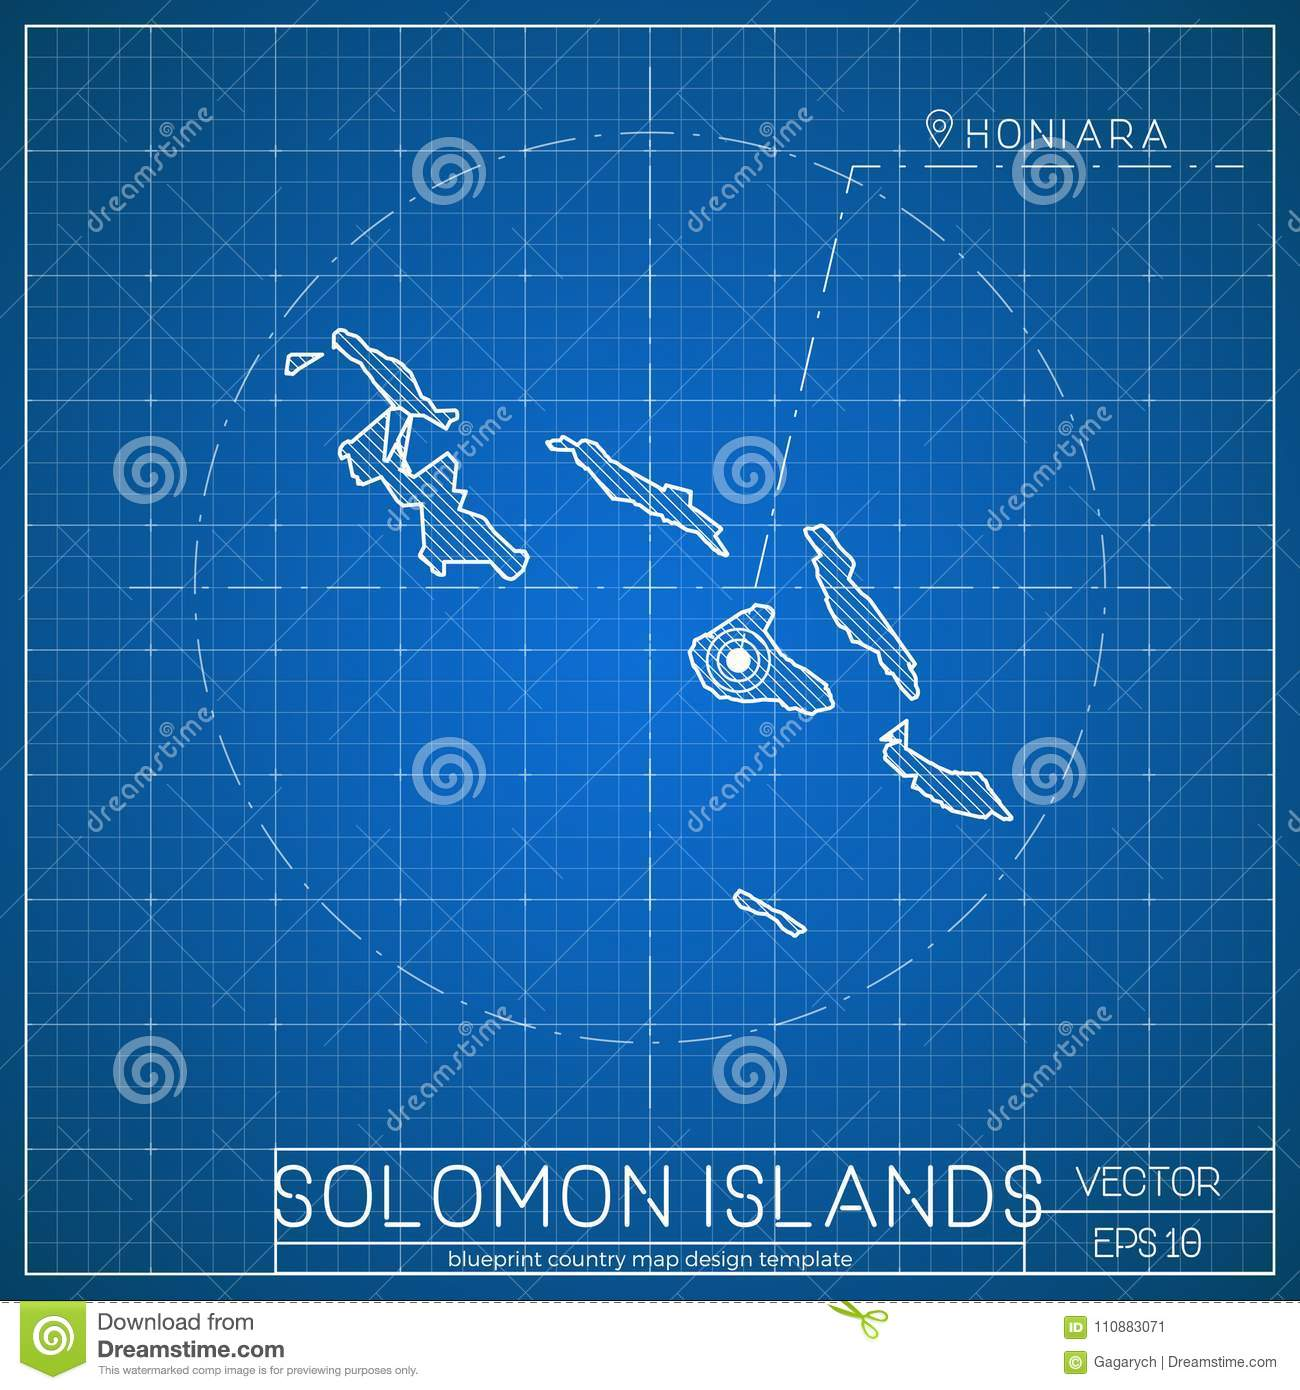 Solomon Islands Blueprint Map Template With  Stock Vector